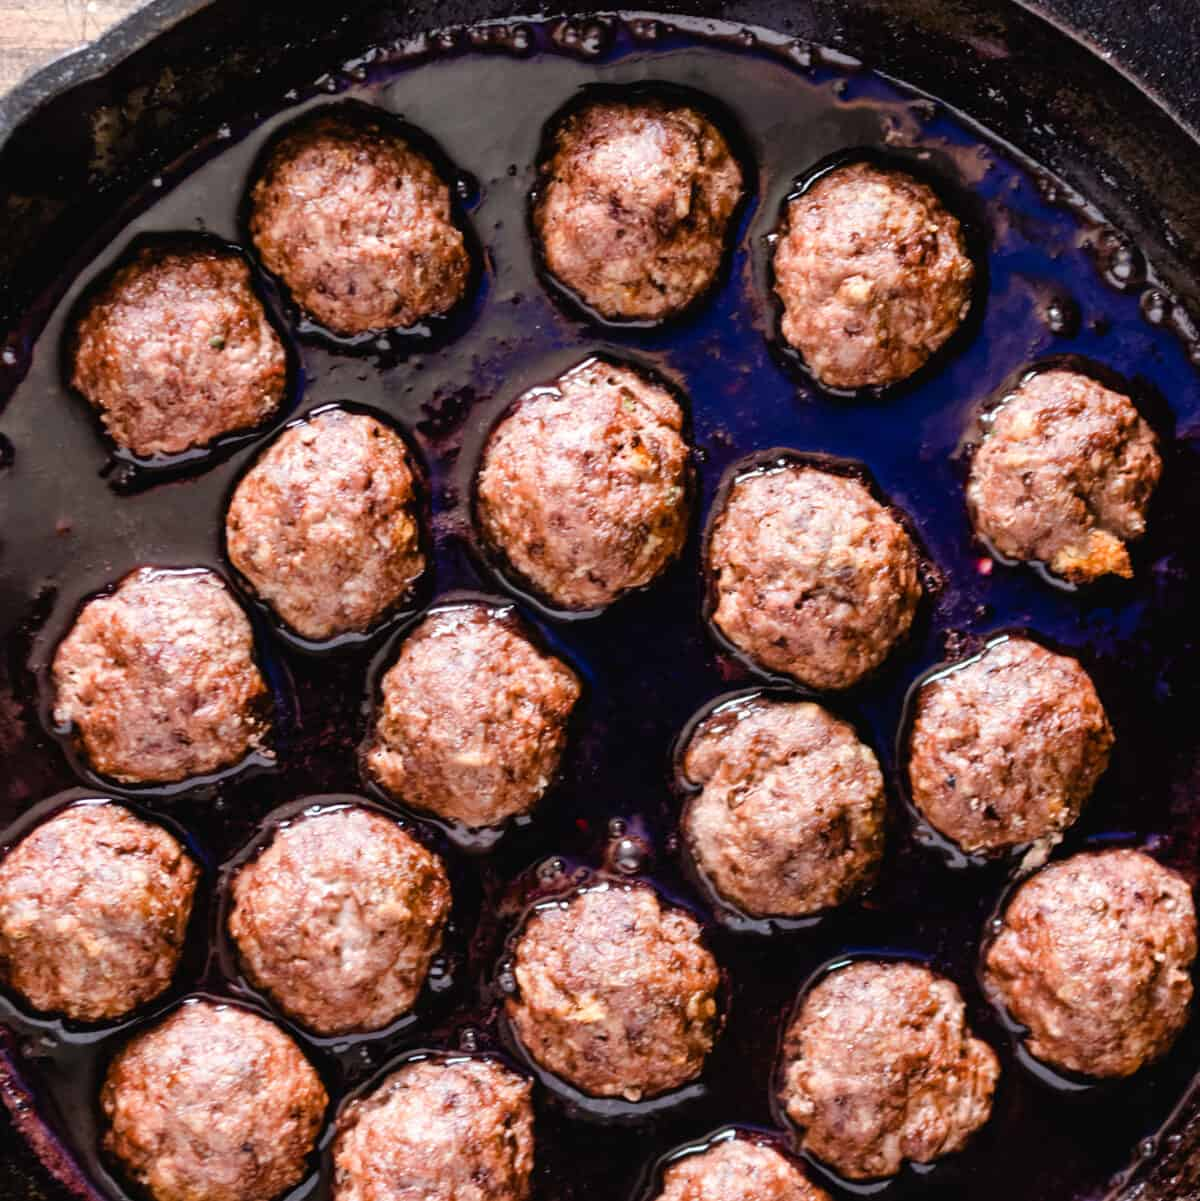 Meatballs in a skillet with a cherry sauce.